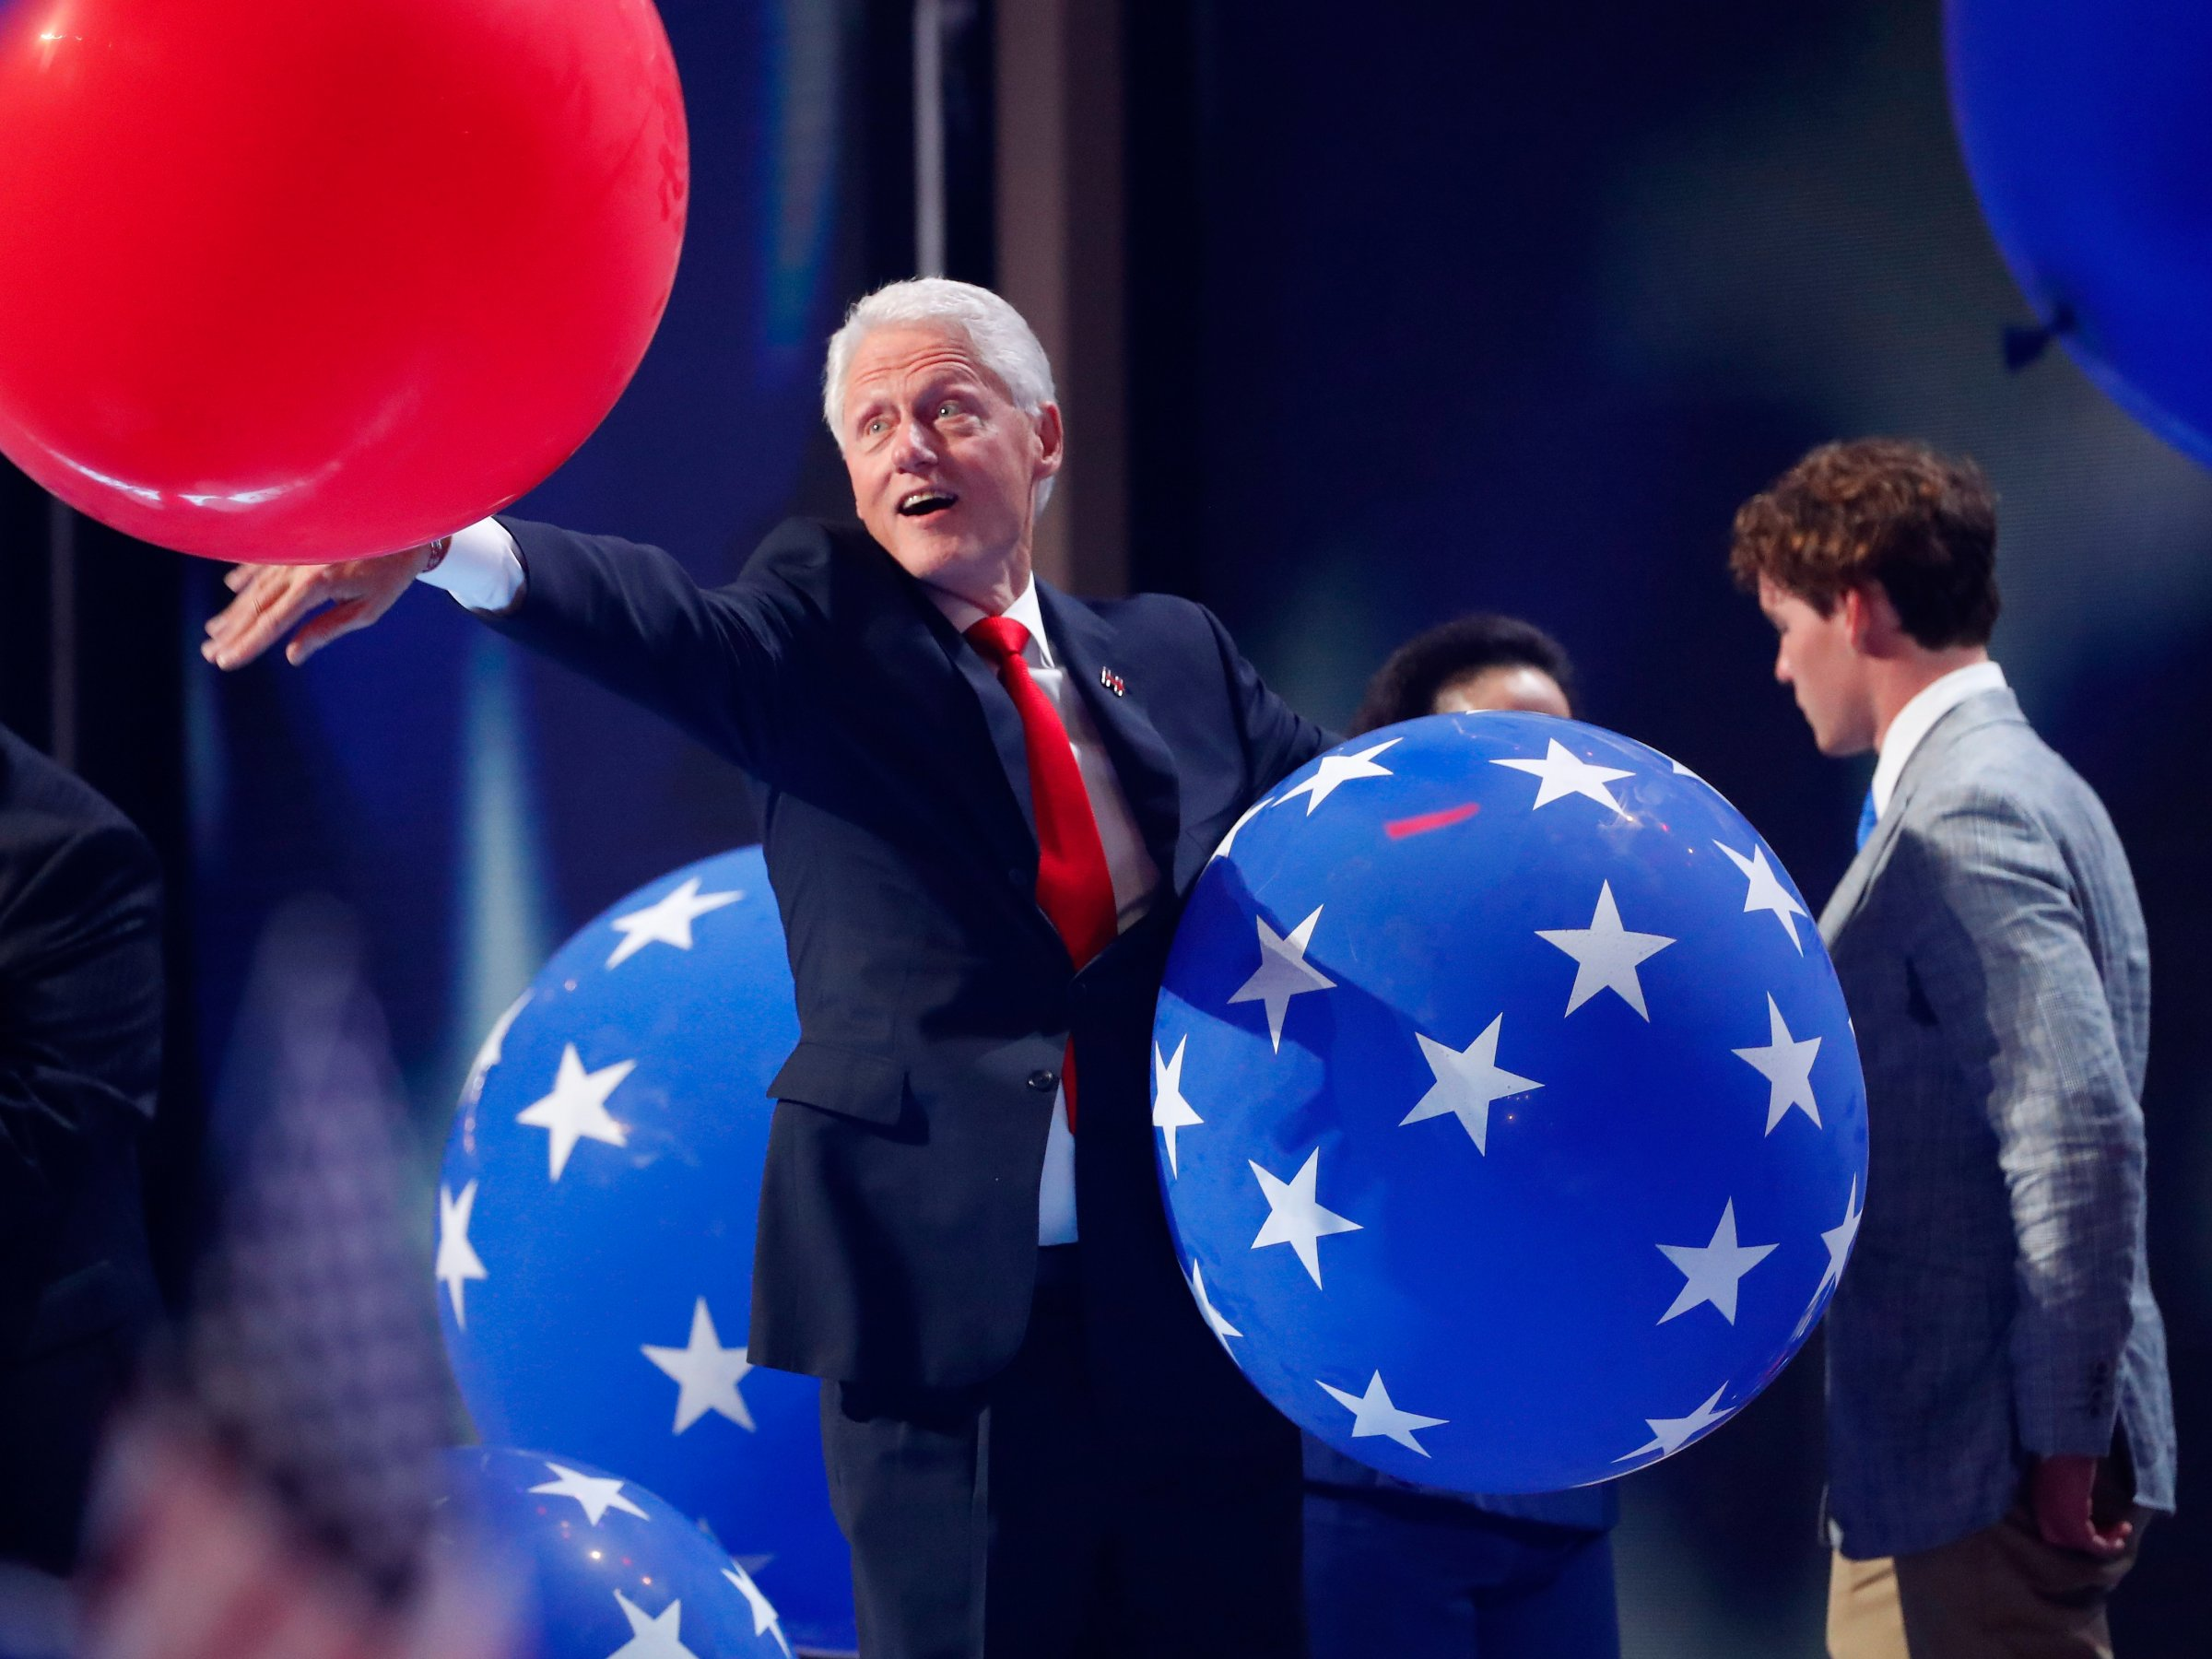 Bill Clinton's Ritzy Birthday Gala Is Mega $$ Fundraiser for Family Foundation [VIDEOS]